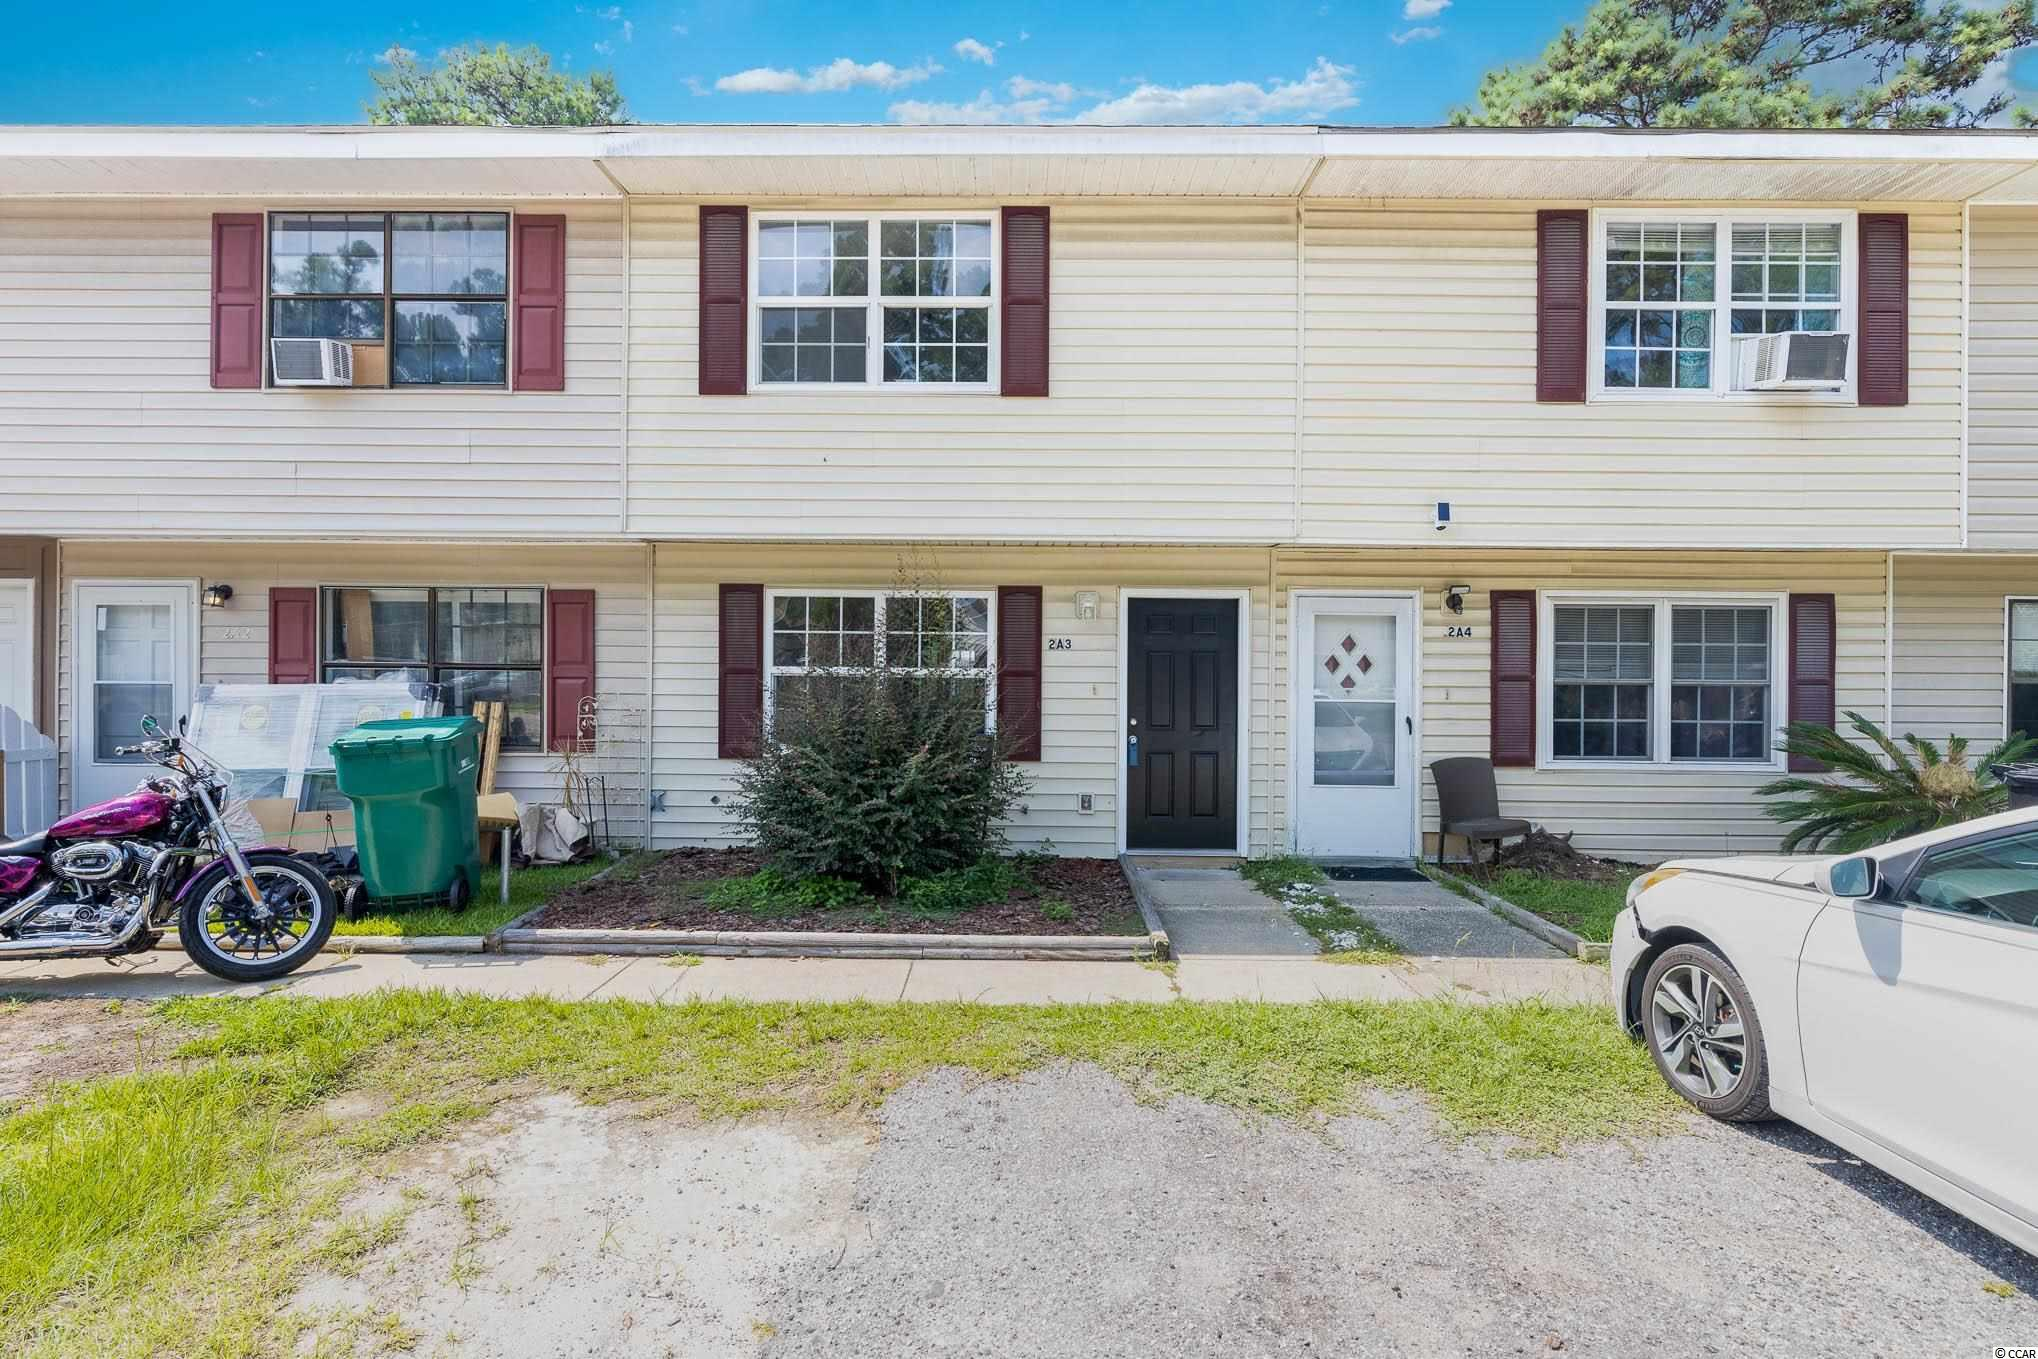 """Lovely NO HOA 2 bedroom, 1.5 bath townhome located in Deerfield plantation. Home has been freshly painted and includes a large living area, an overflow of natural light, tile and laminate flooring, kitchen appliances, washer and dryer, upgraded light fixtures, and a private balcony overlooking the private-fenced backyard. Roof replaced in 2018 and HVAC replaced in 2020. and  Located in Surfside Beach, also known as the """"Family Beach,"""" next to two great parks and less than 5 minutes from the beach."""